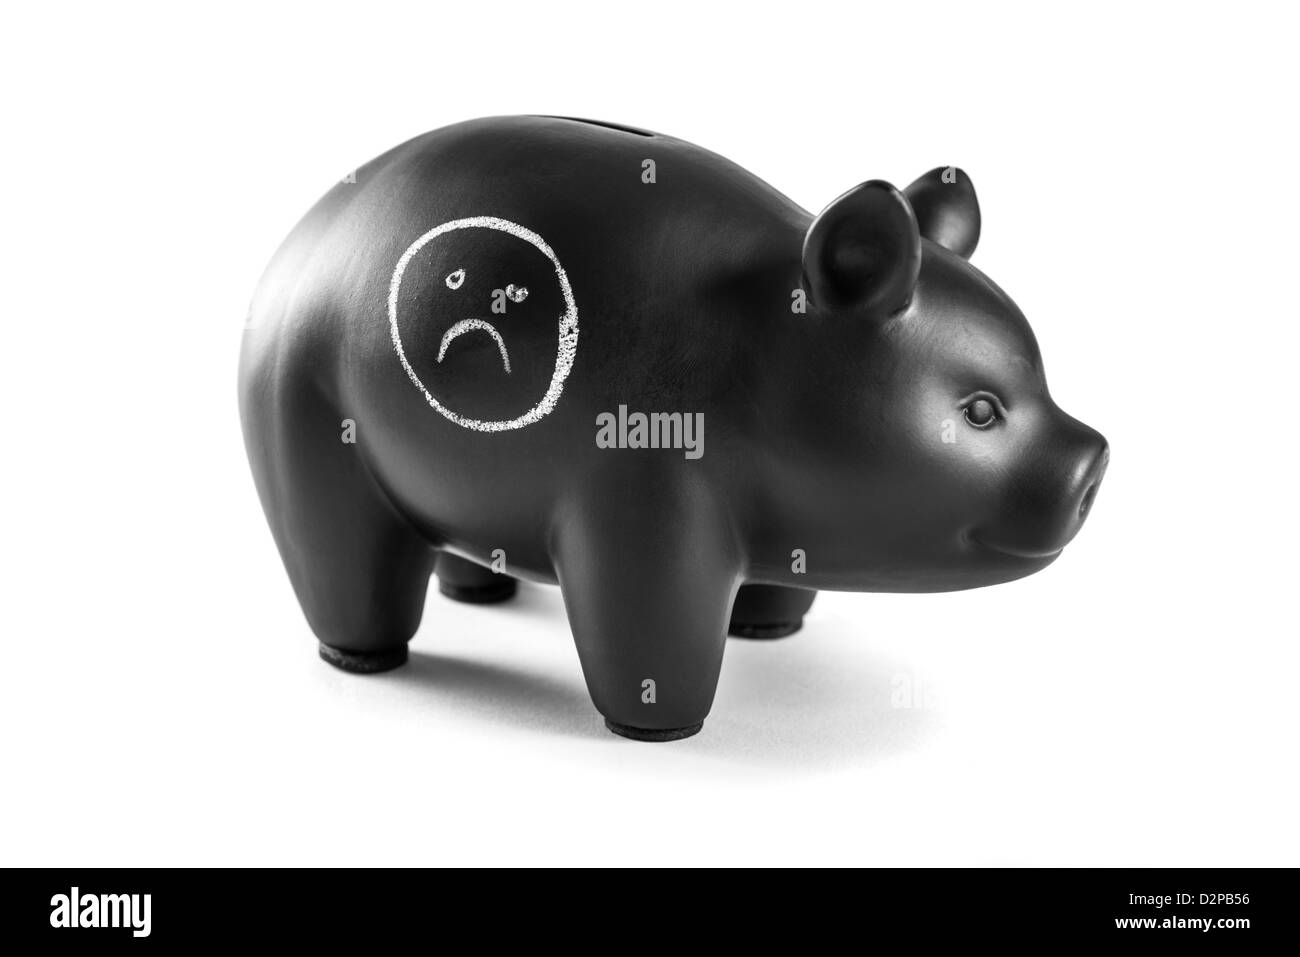 Black piggy bank on white background with sad face written on it - Stock Image